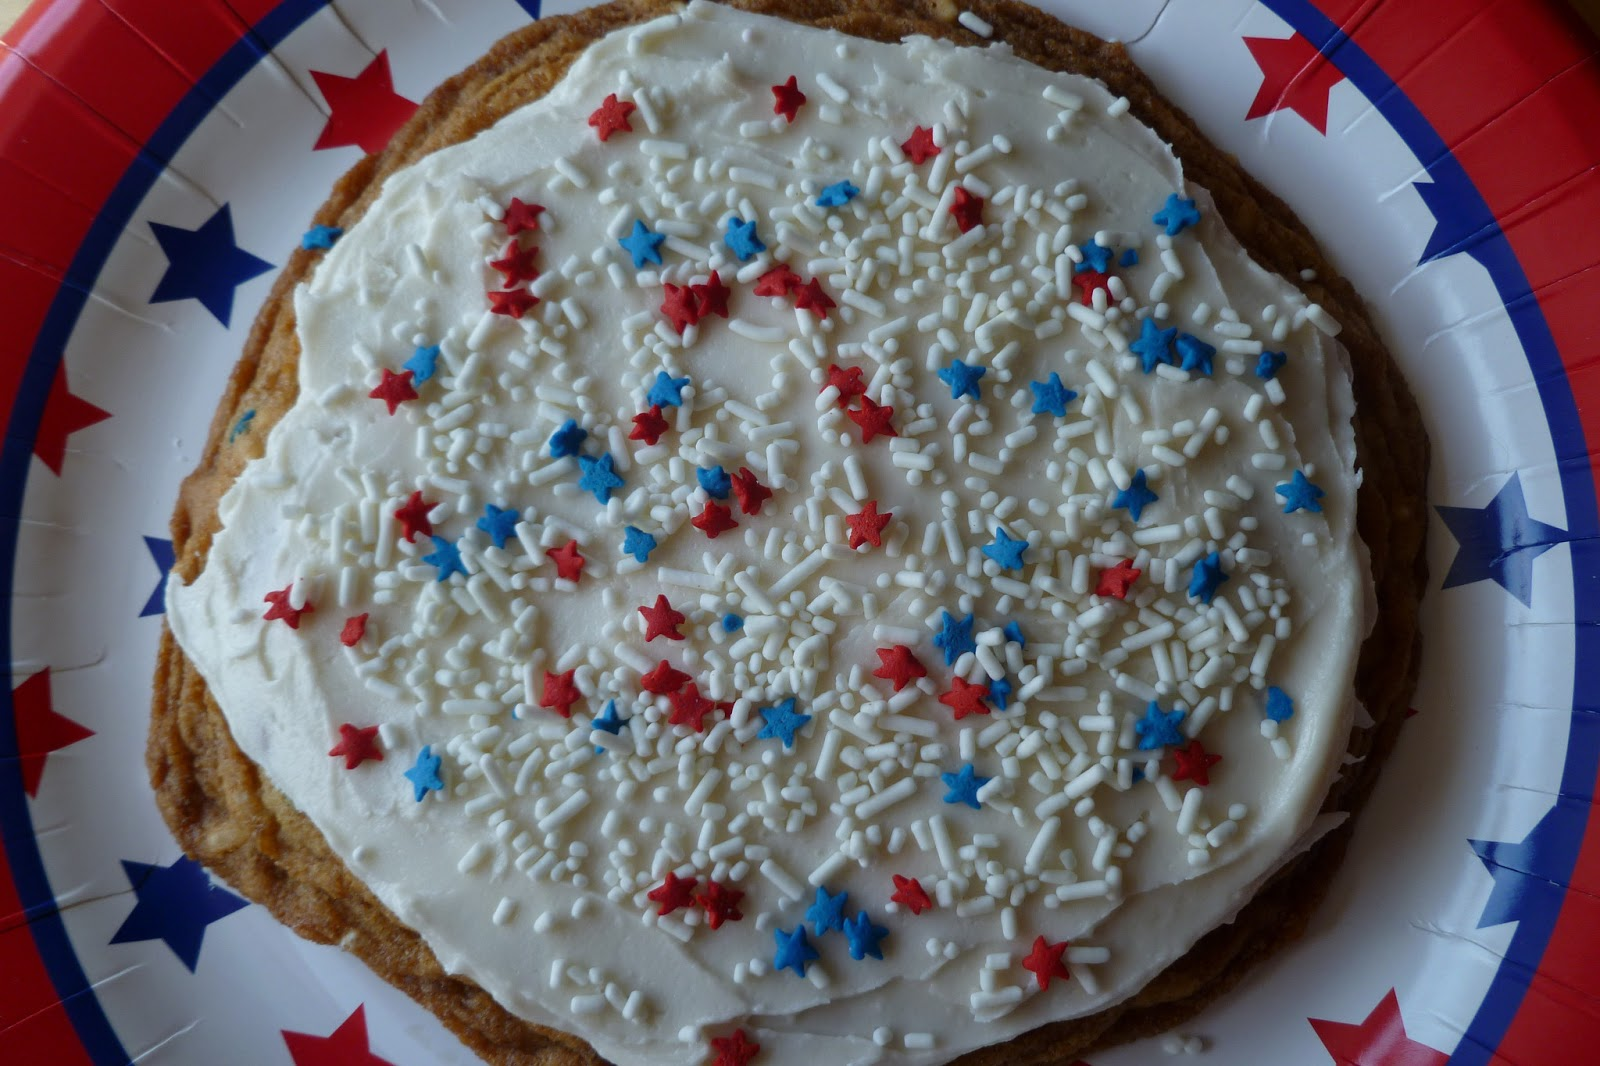 The Pastry Chef's Baking: Giant Sugar Cookie - Happy Birthday USA!